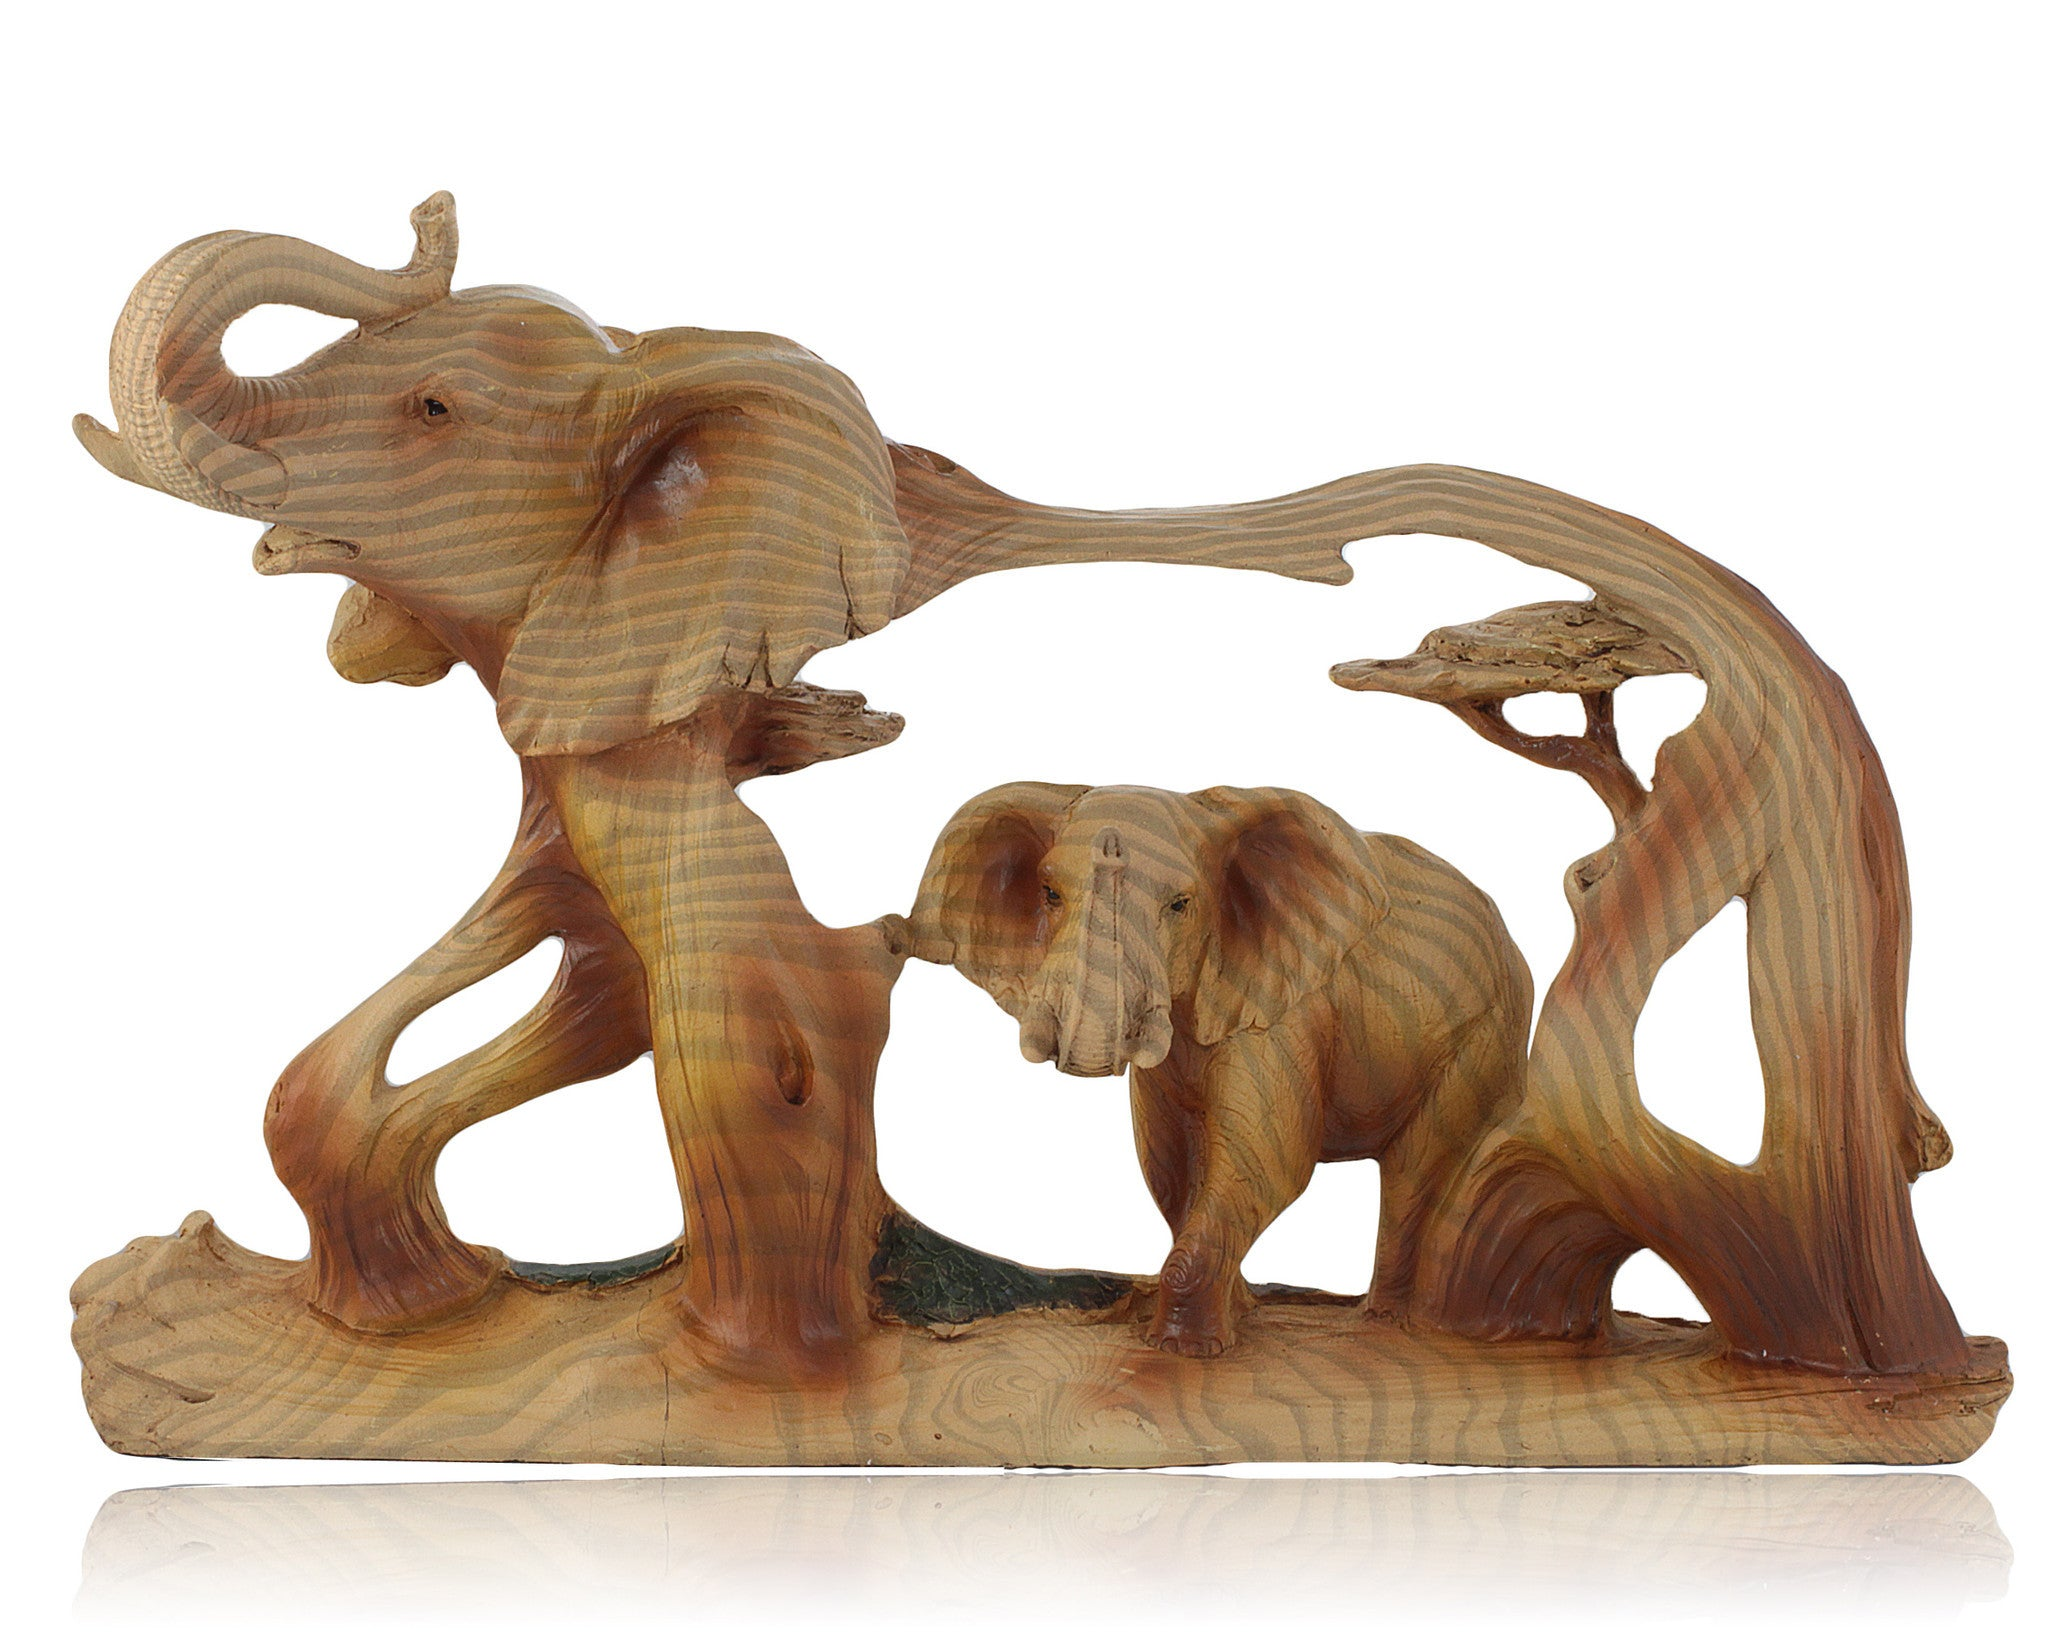 Elephant in Elephant Faux Wood Carving by Unison Gifts